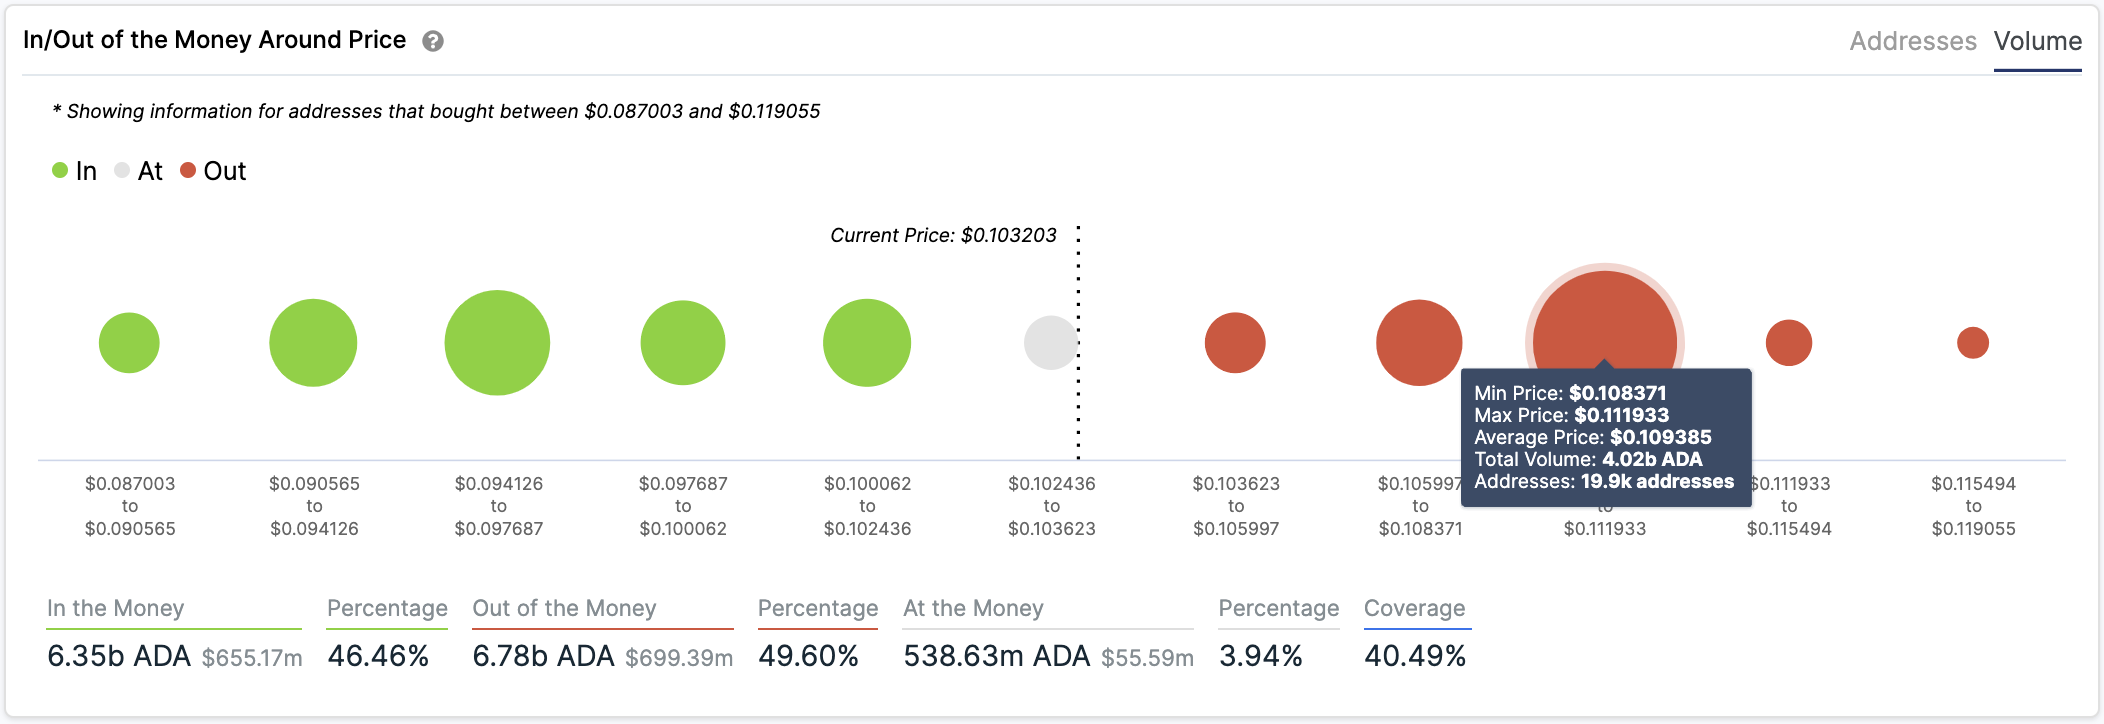 ADA's In/Out of the Money Around Price by IntoTheBlock